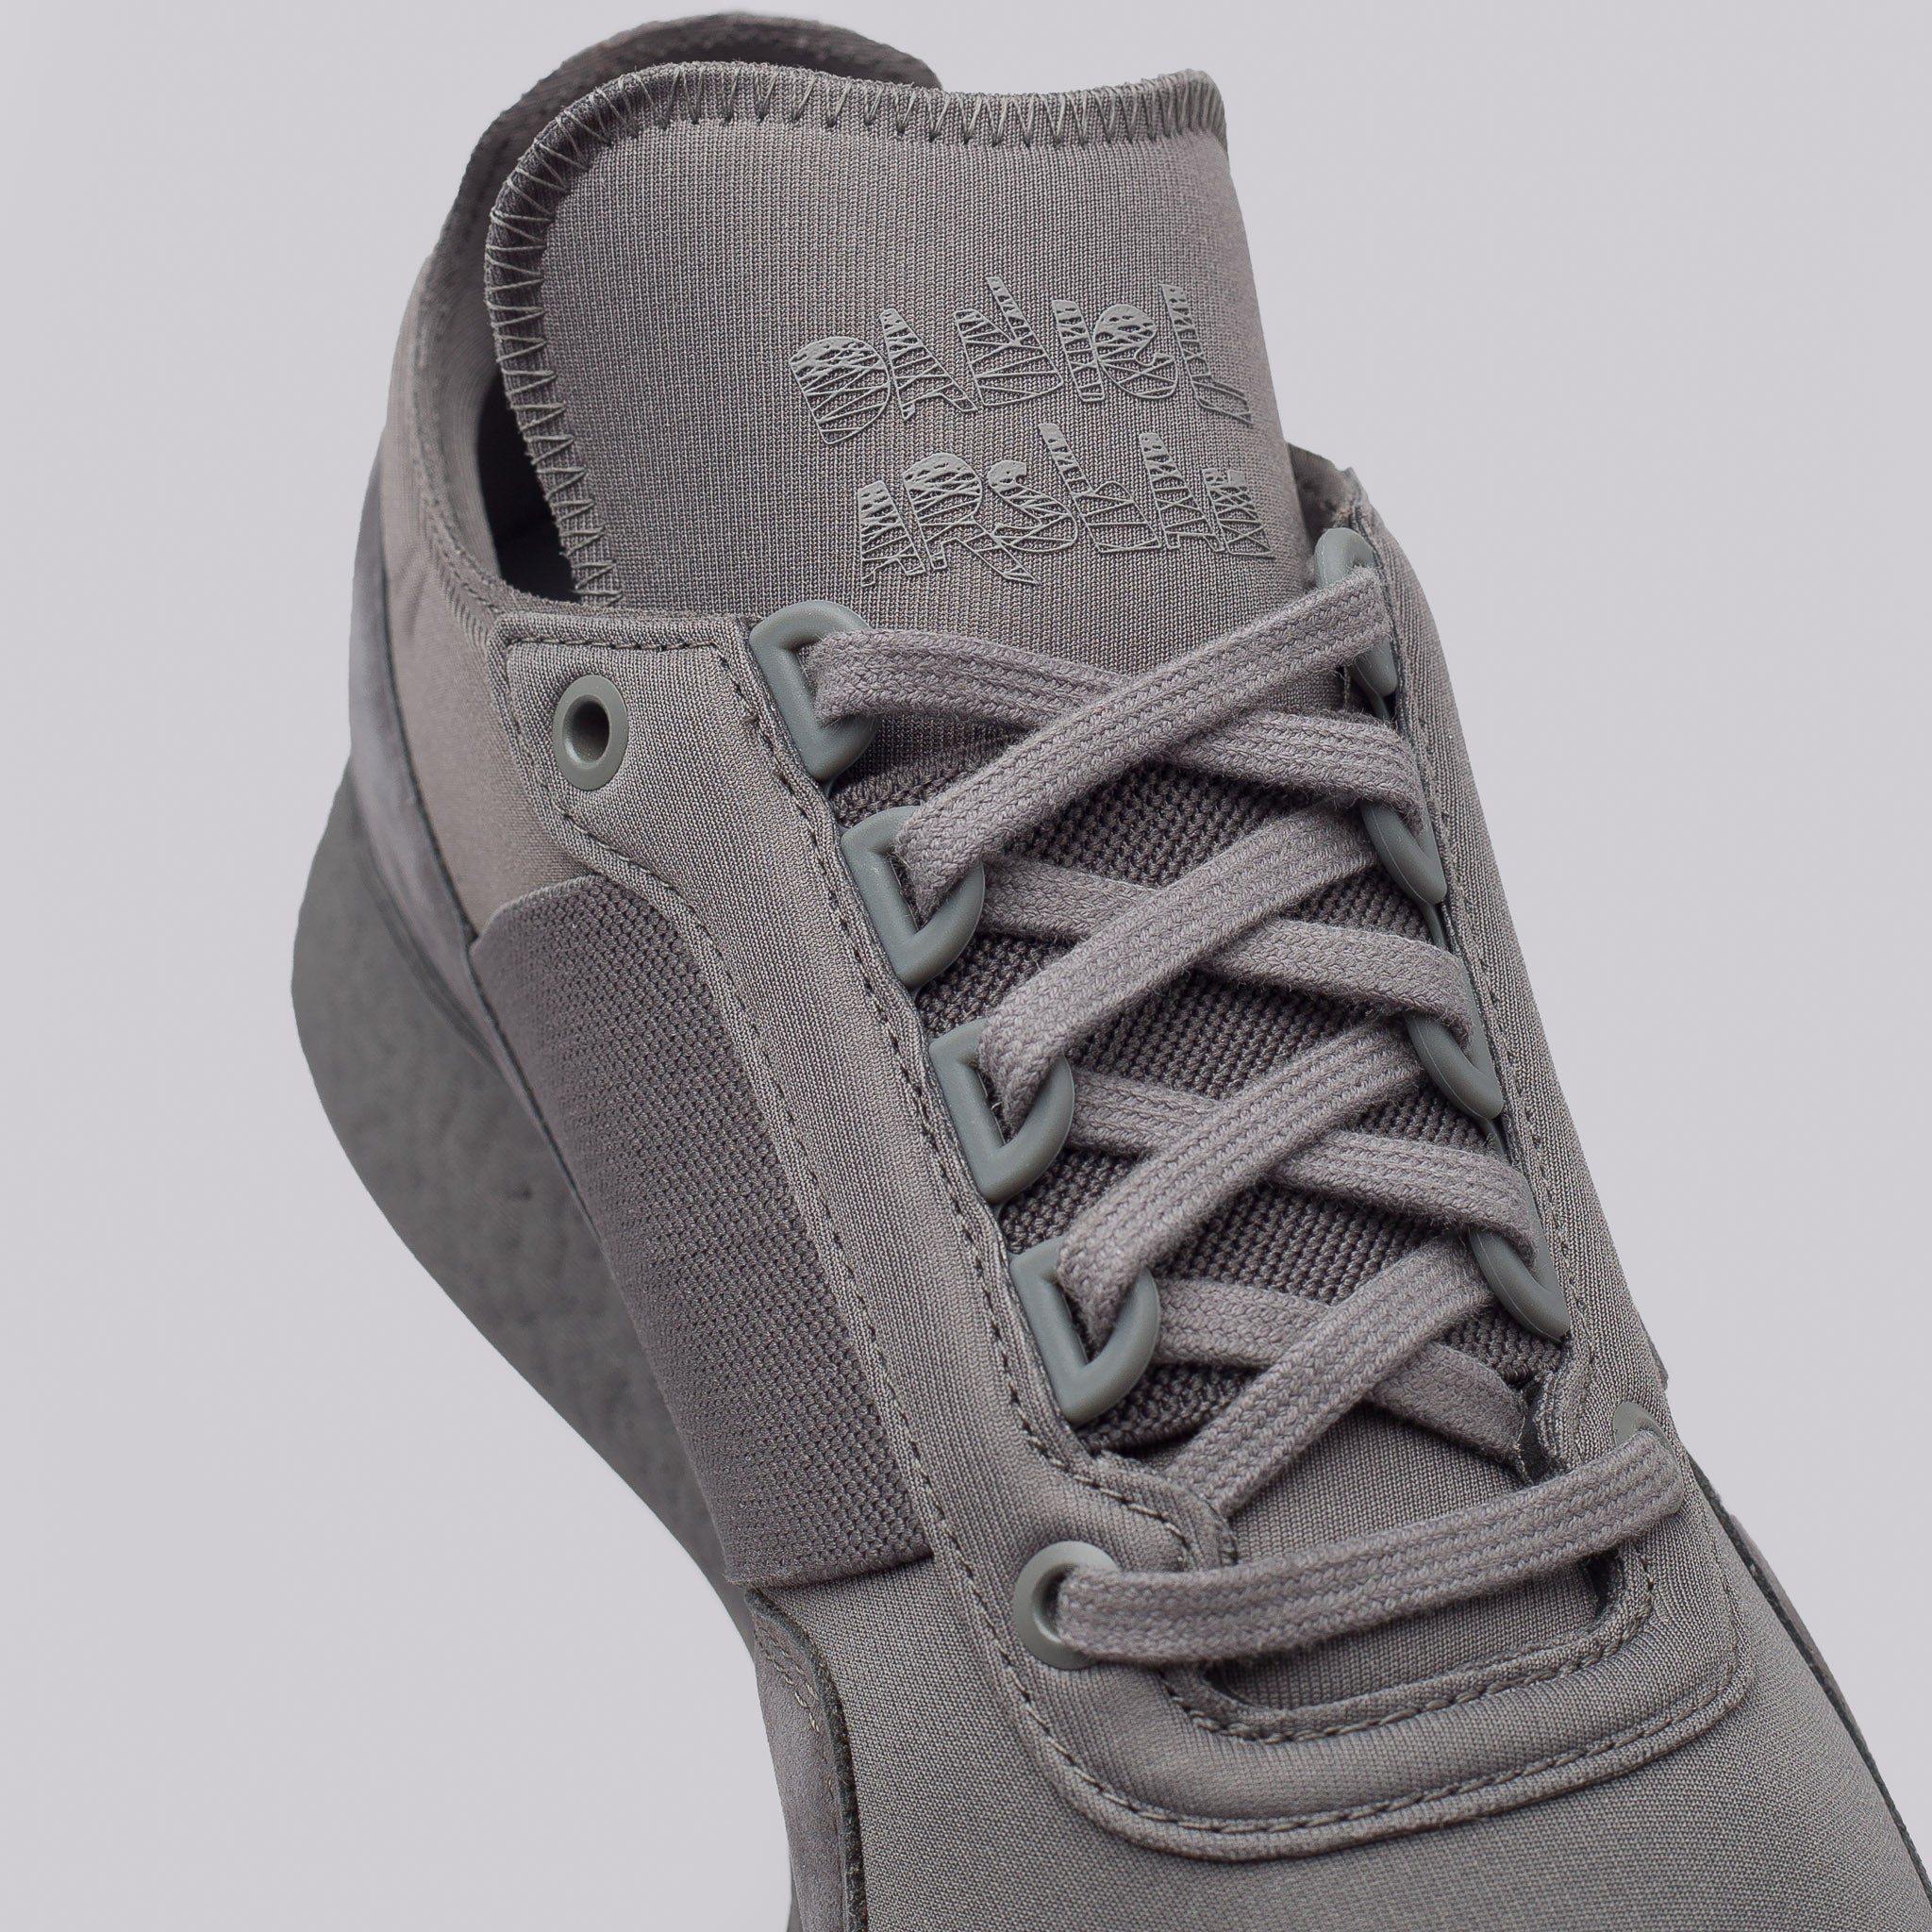 x Daniel Arsham New York Present in Grey